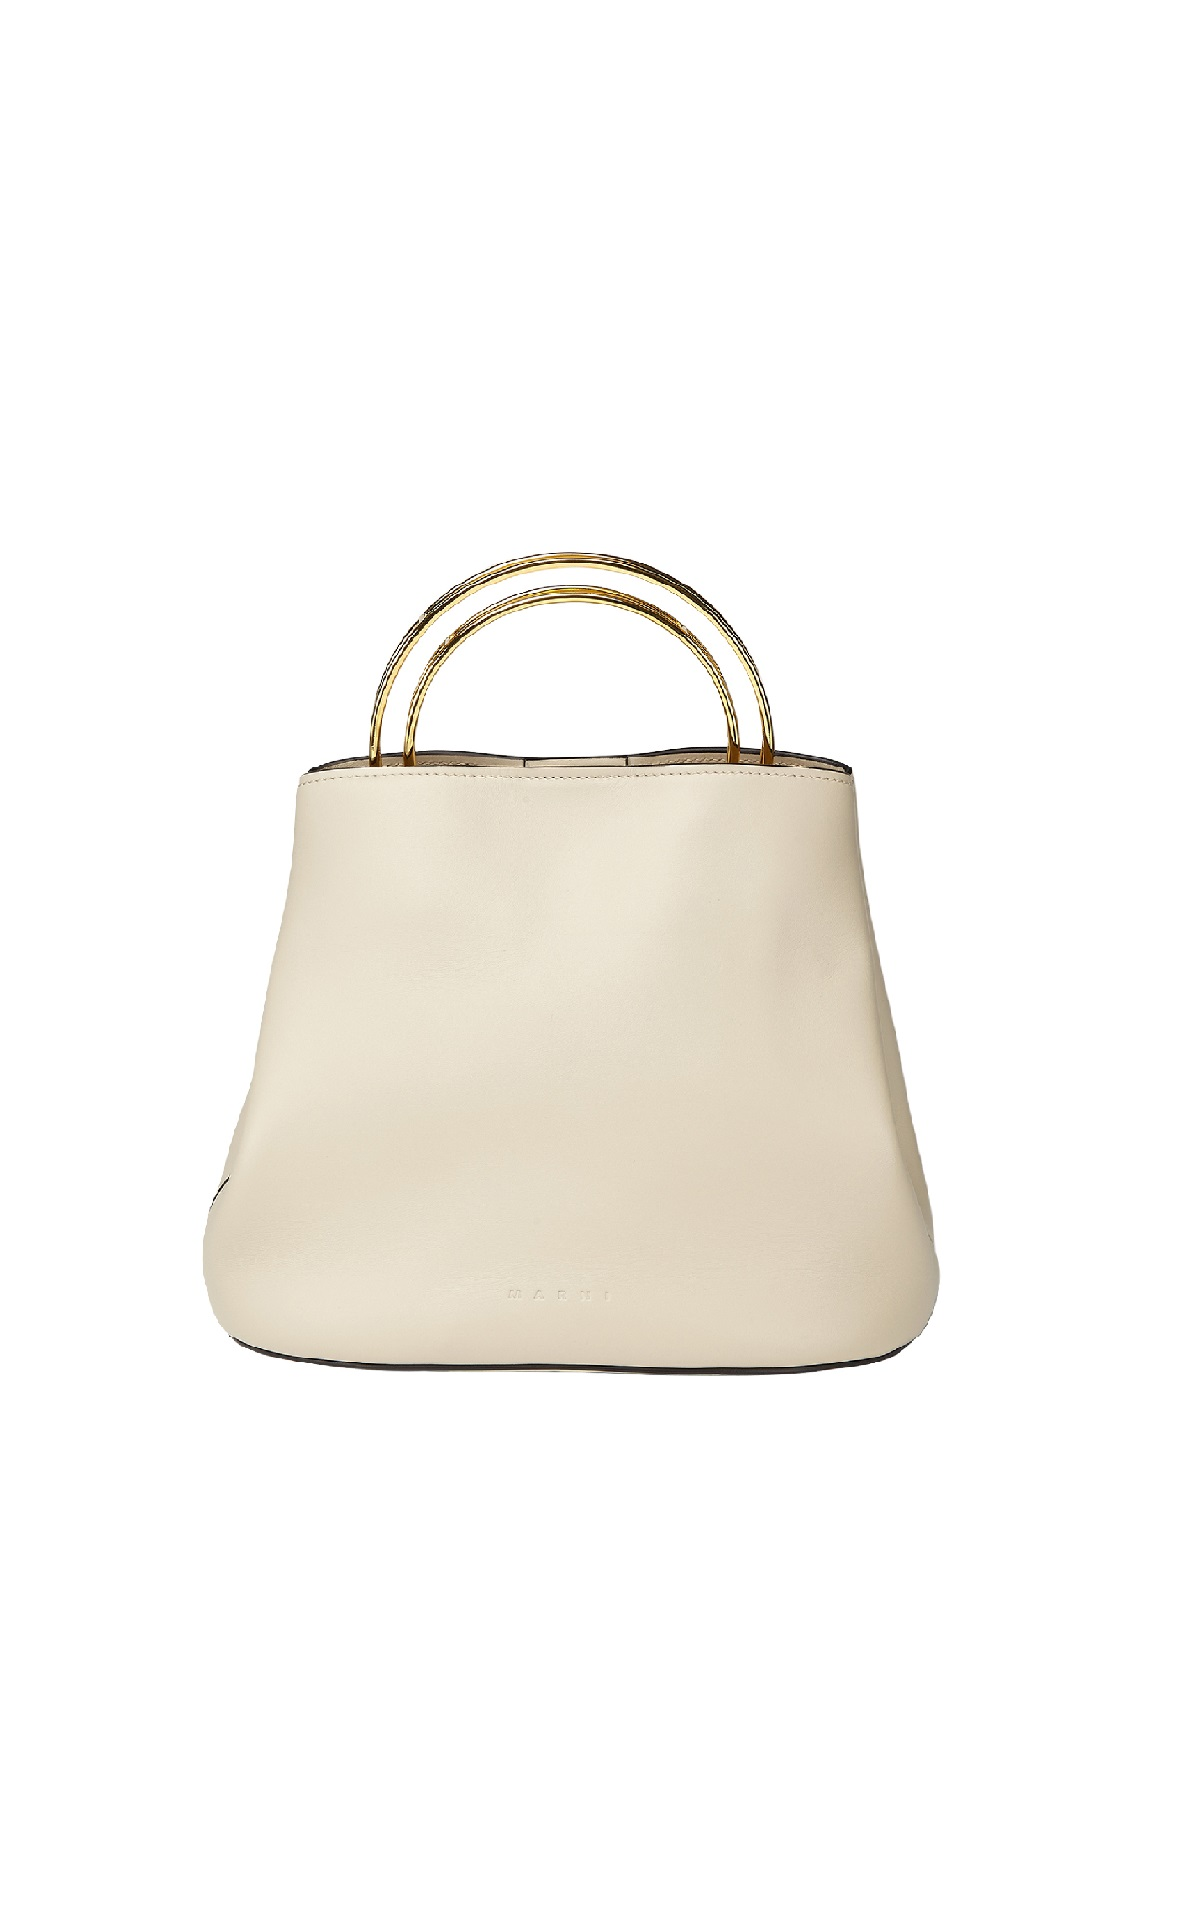 Biege leather bag Marni